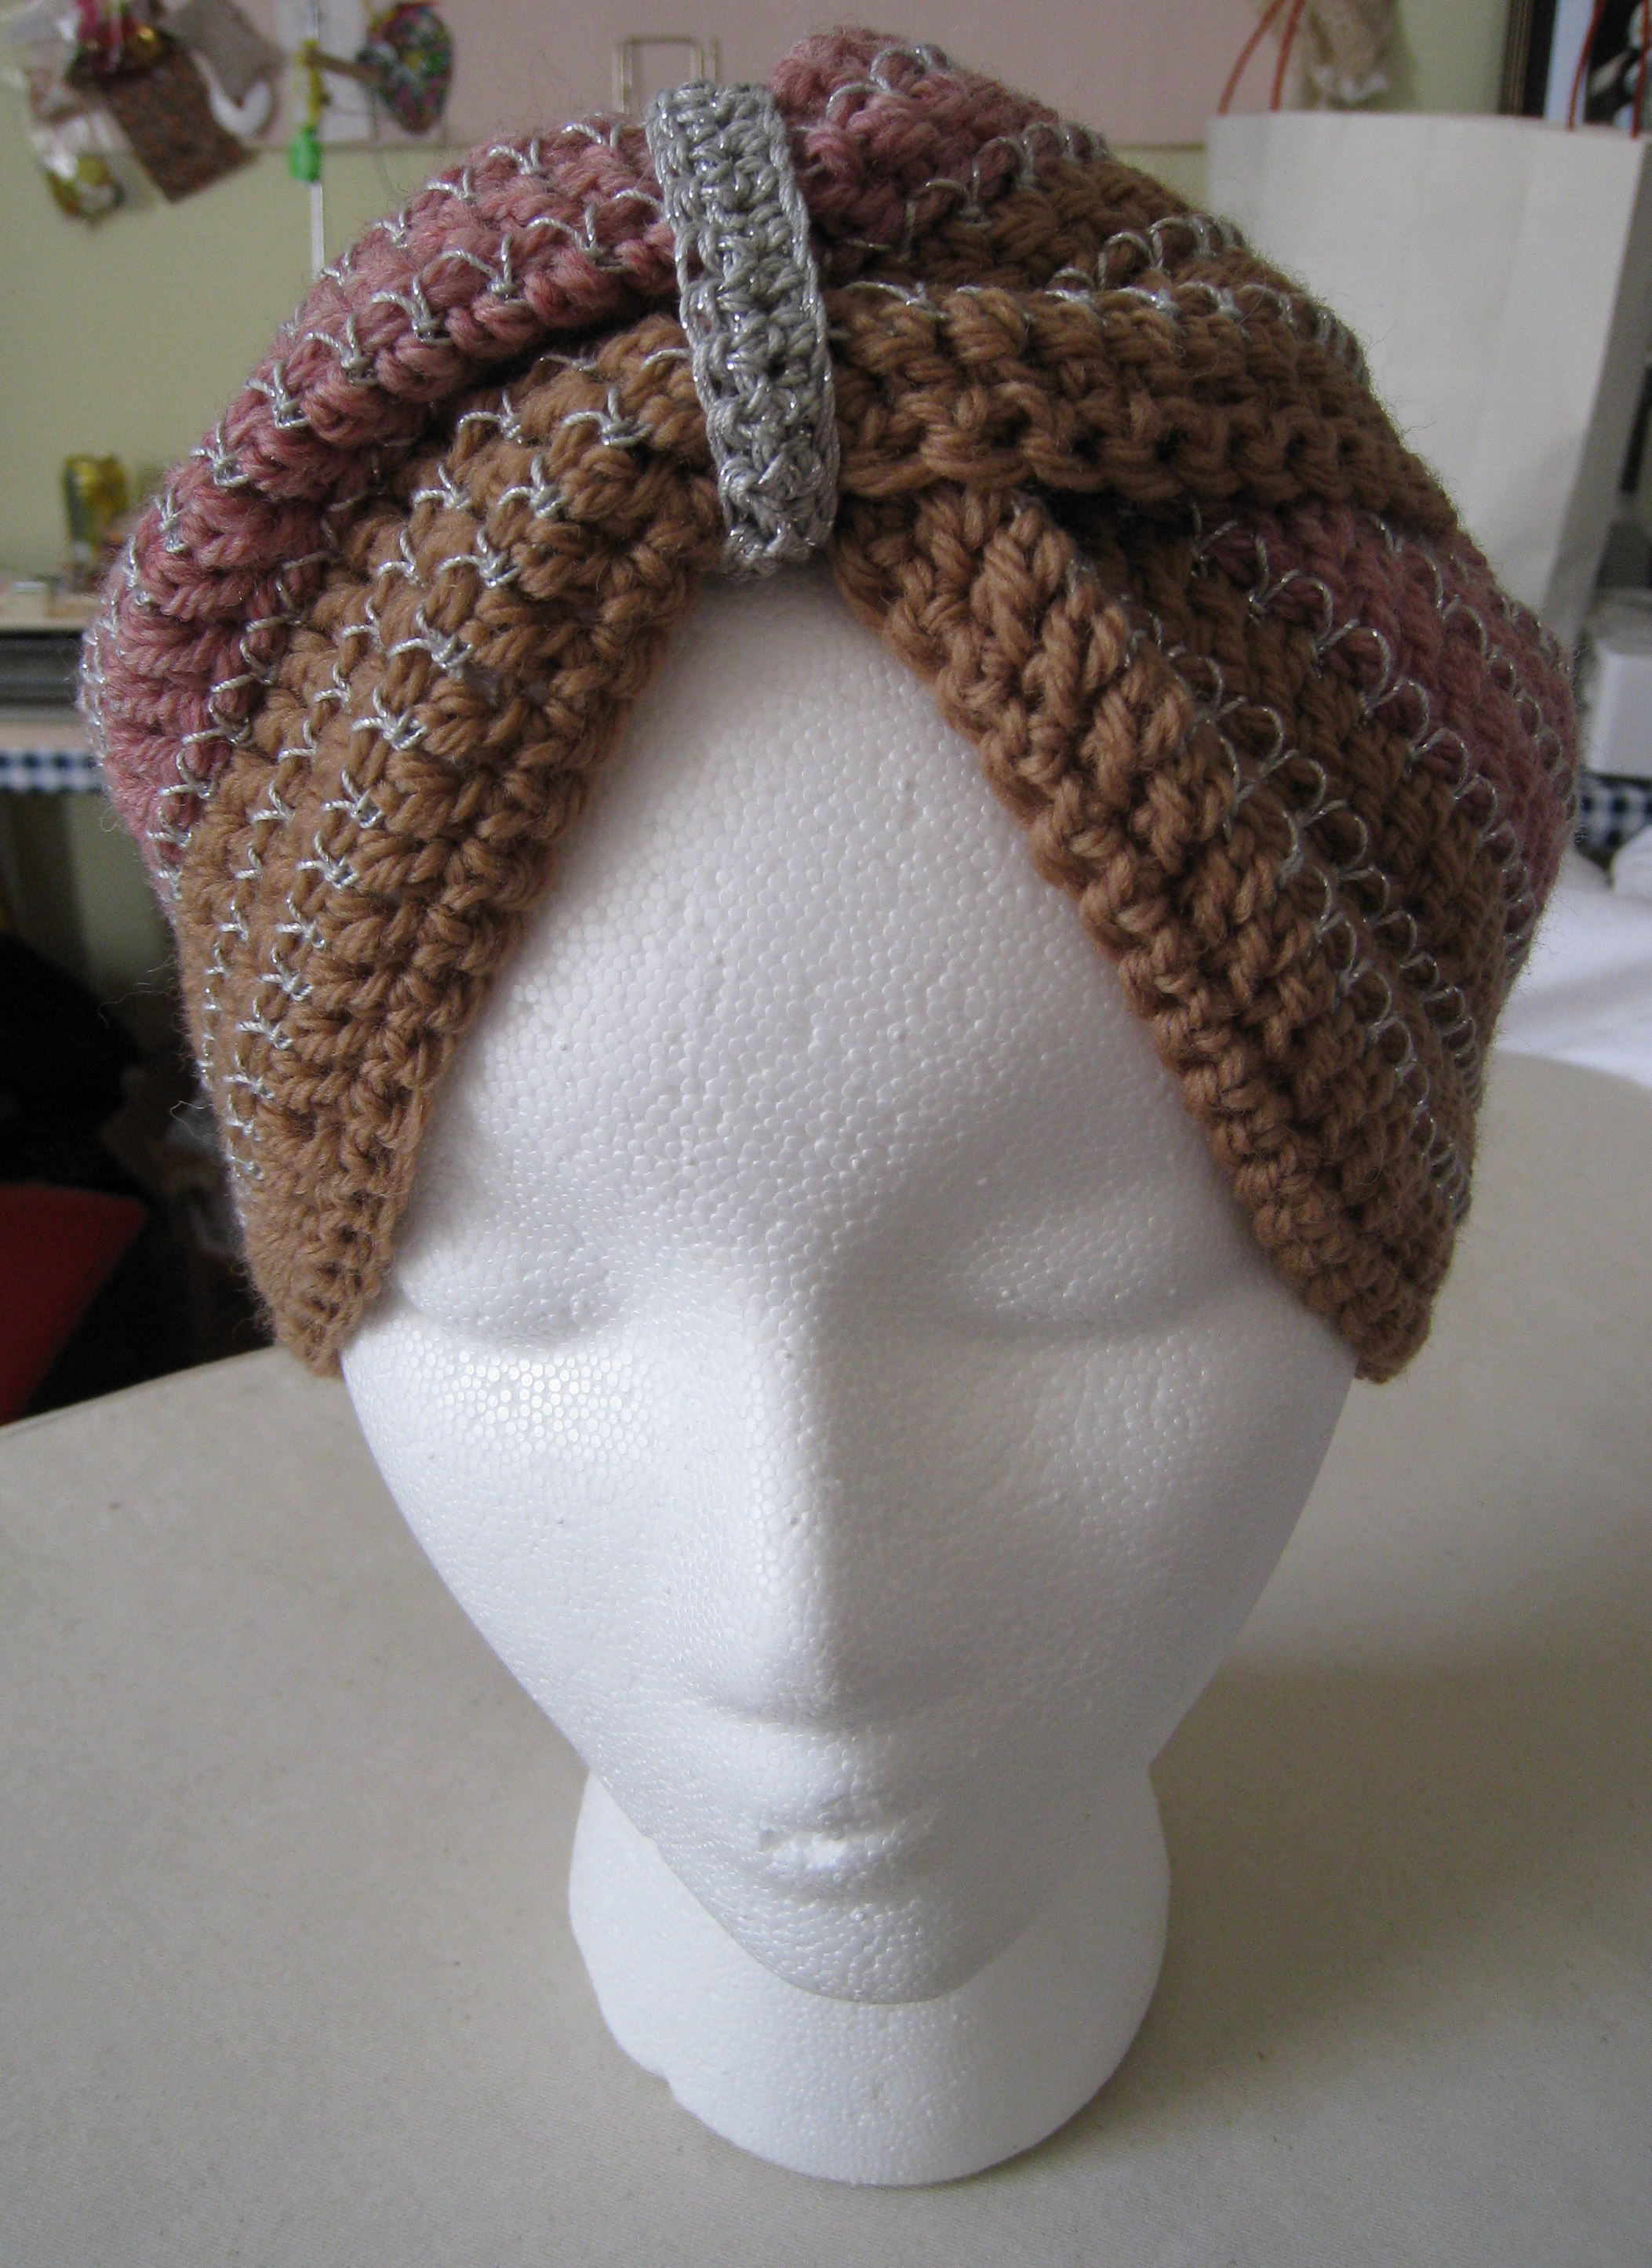 Free Crochet Pattern For Turban Headband : CROCHET TURBAN PATTERNS Crochet Projects